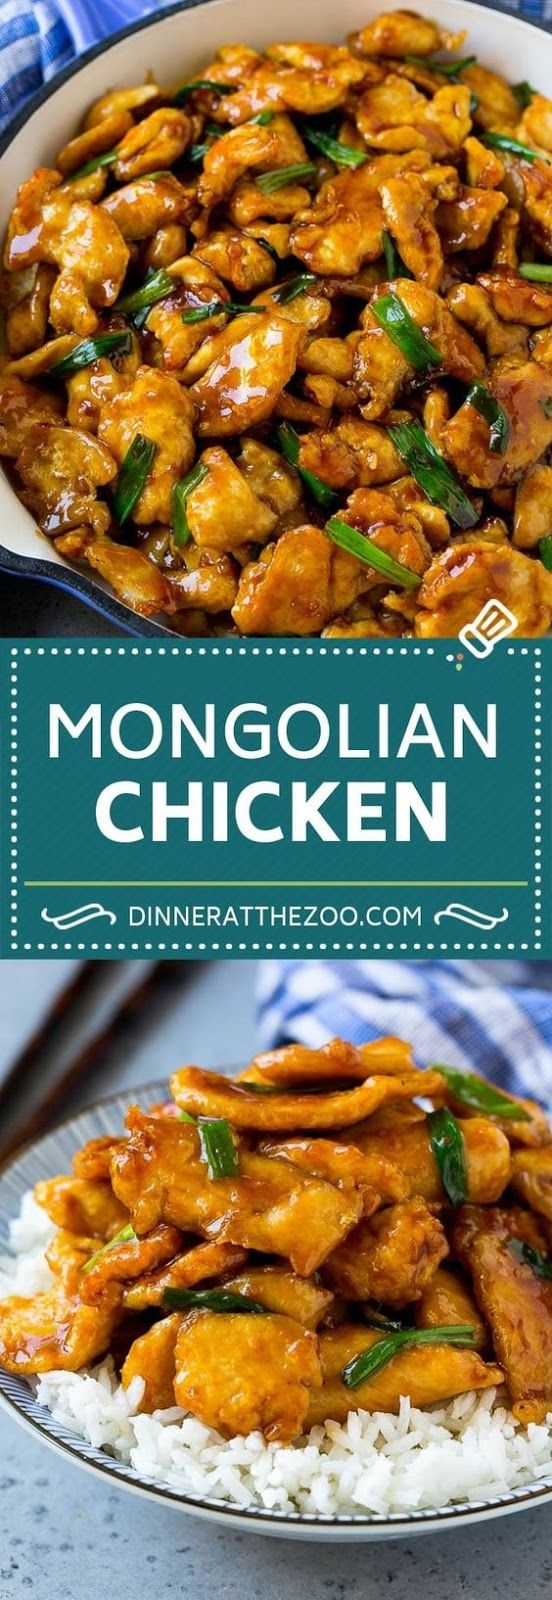 Chinese Food Recipes | Mongolian Chicken